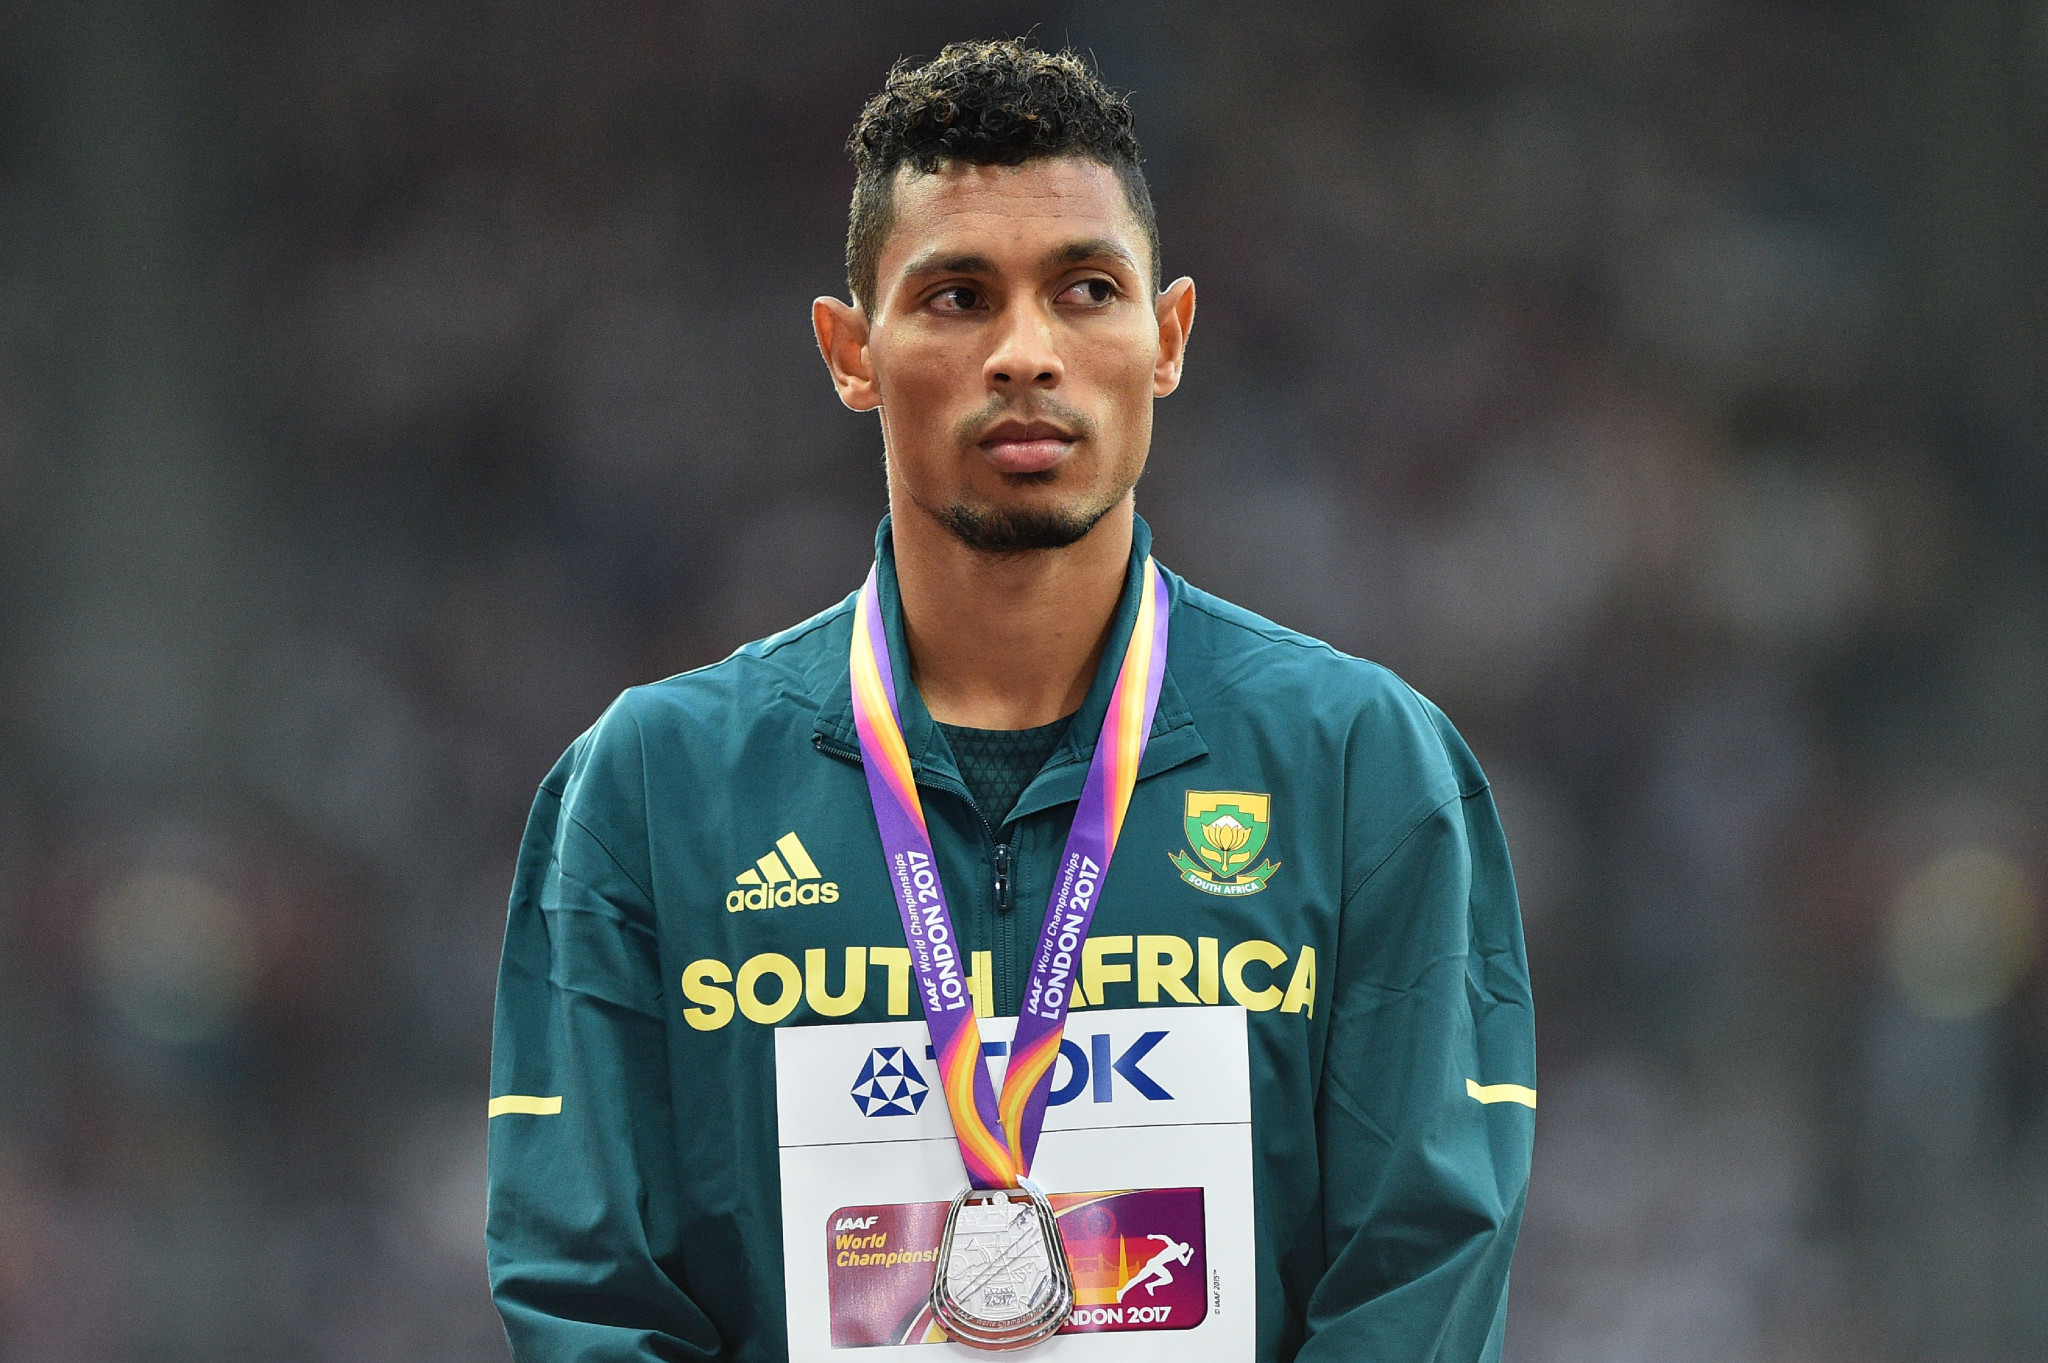 South Africa's Wayde van Niekerk, renowned for his speed in sprinting, is also on the line-up for the Male Athlete of the Year award ©Getty Images